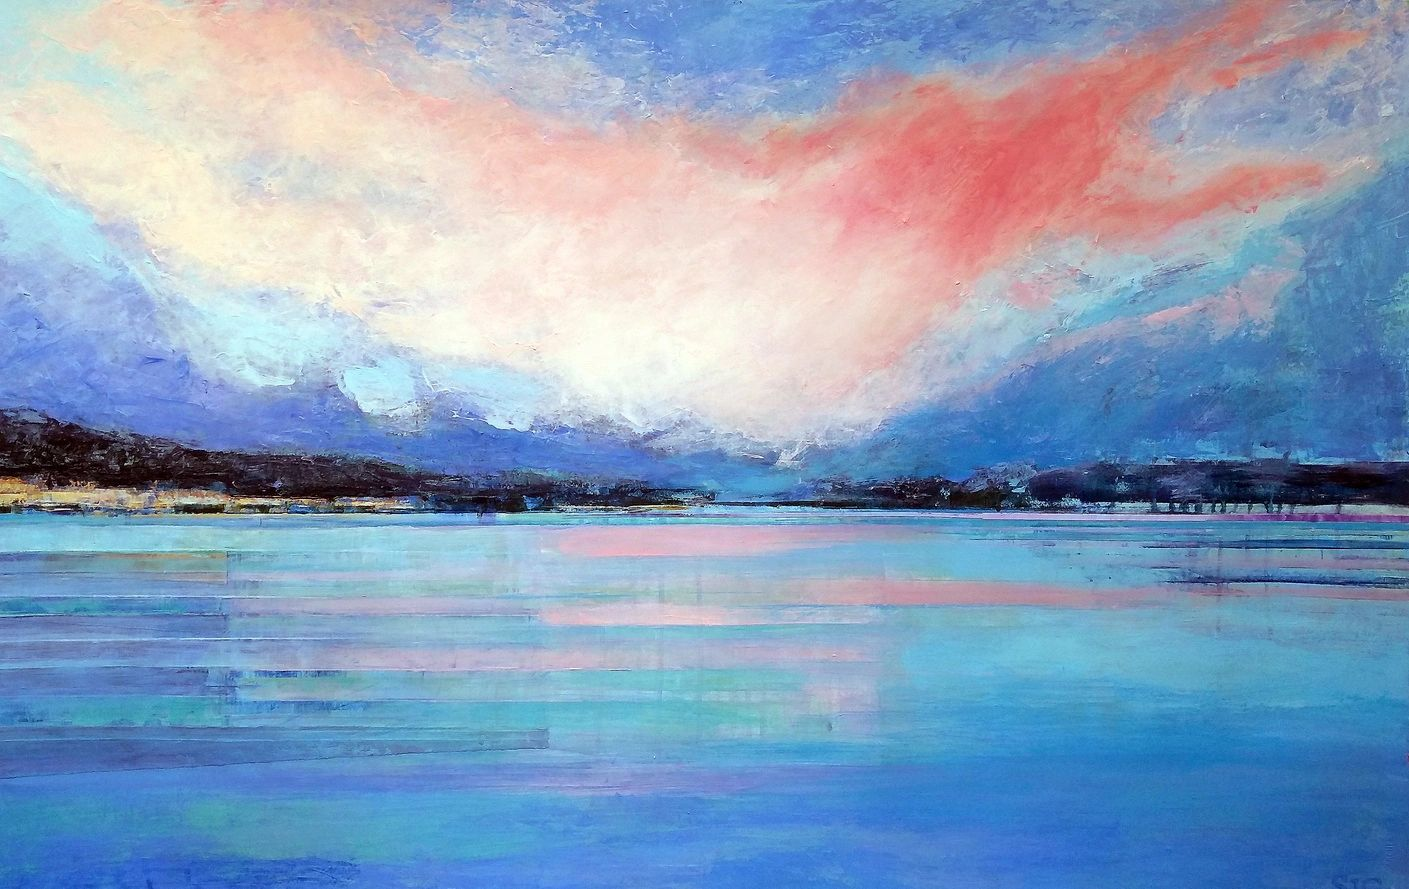 Lake Maggiore, Italy spreads out under a pink cloud sundown. Private Collection.